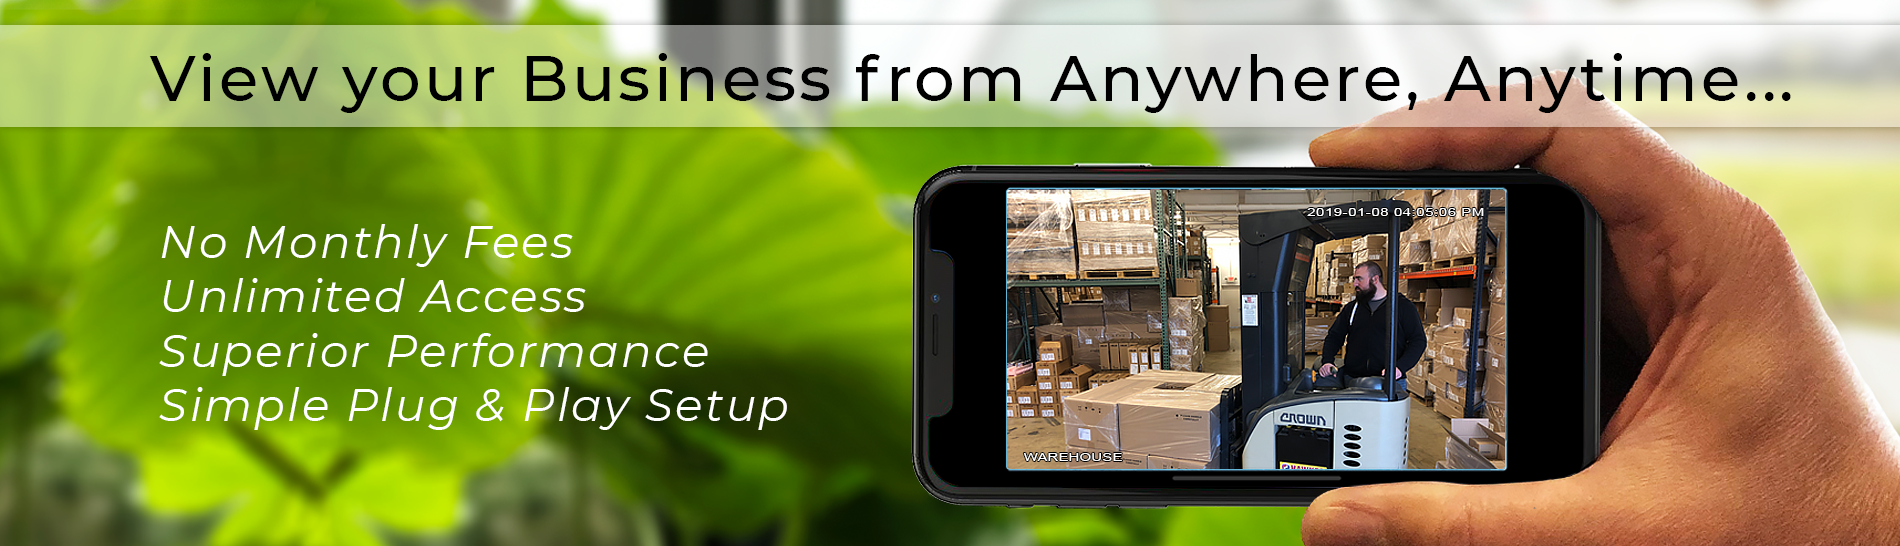 View your Business from Anyhere, Anytime...